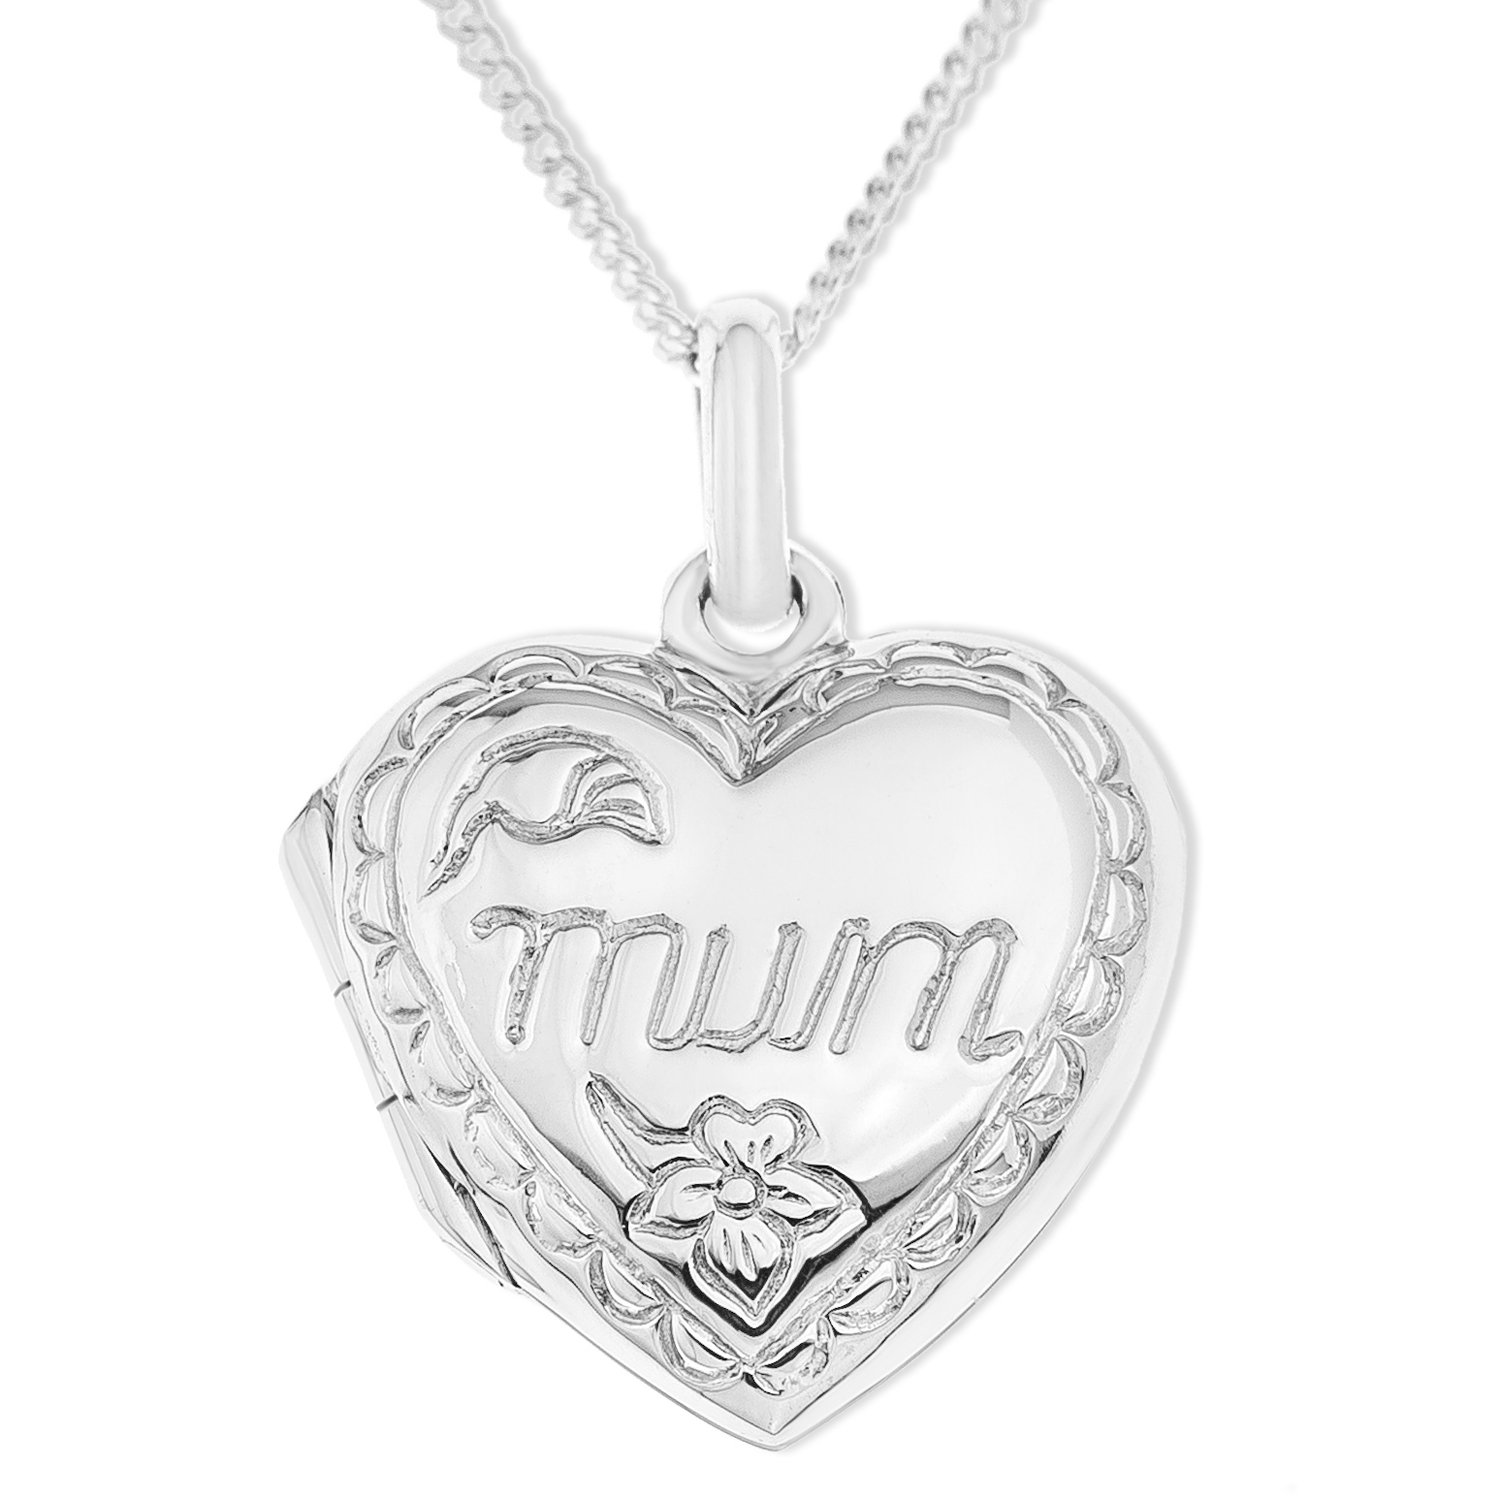 number product h samuel webstore lockets d heart locket silver pendant diamonds hot sterling